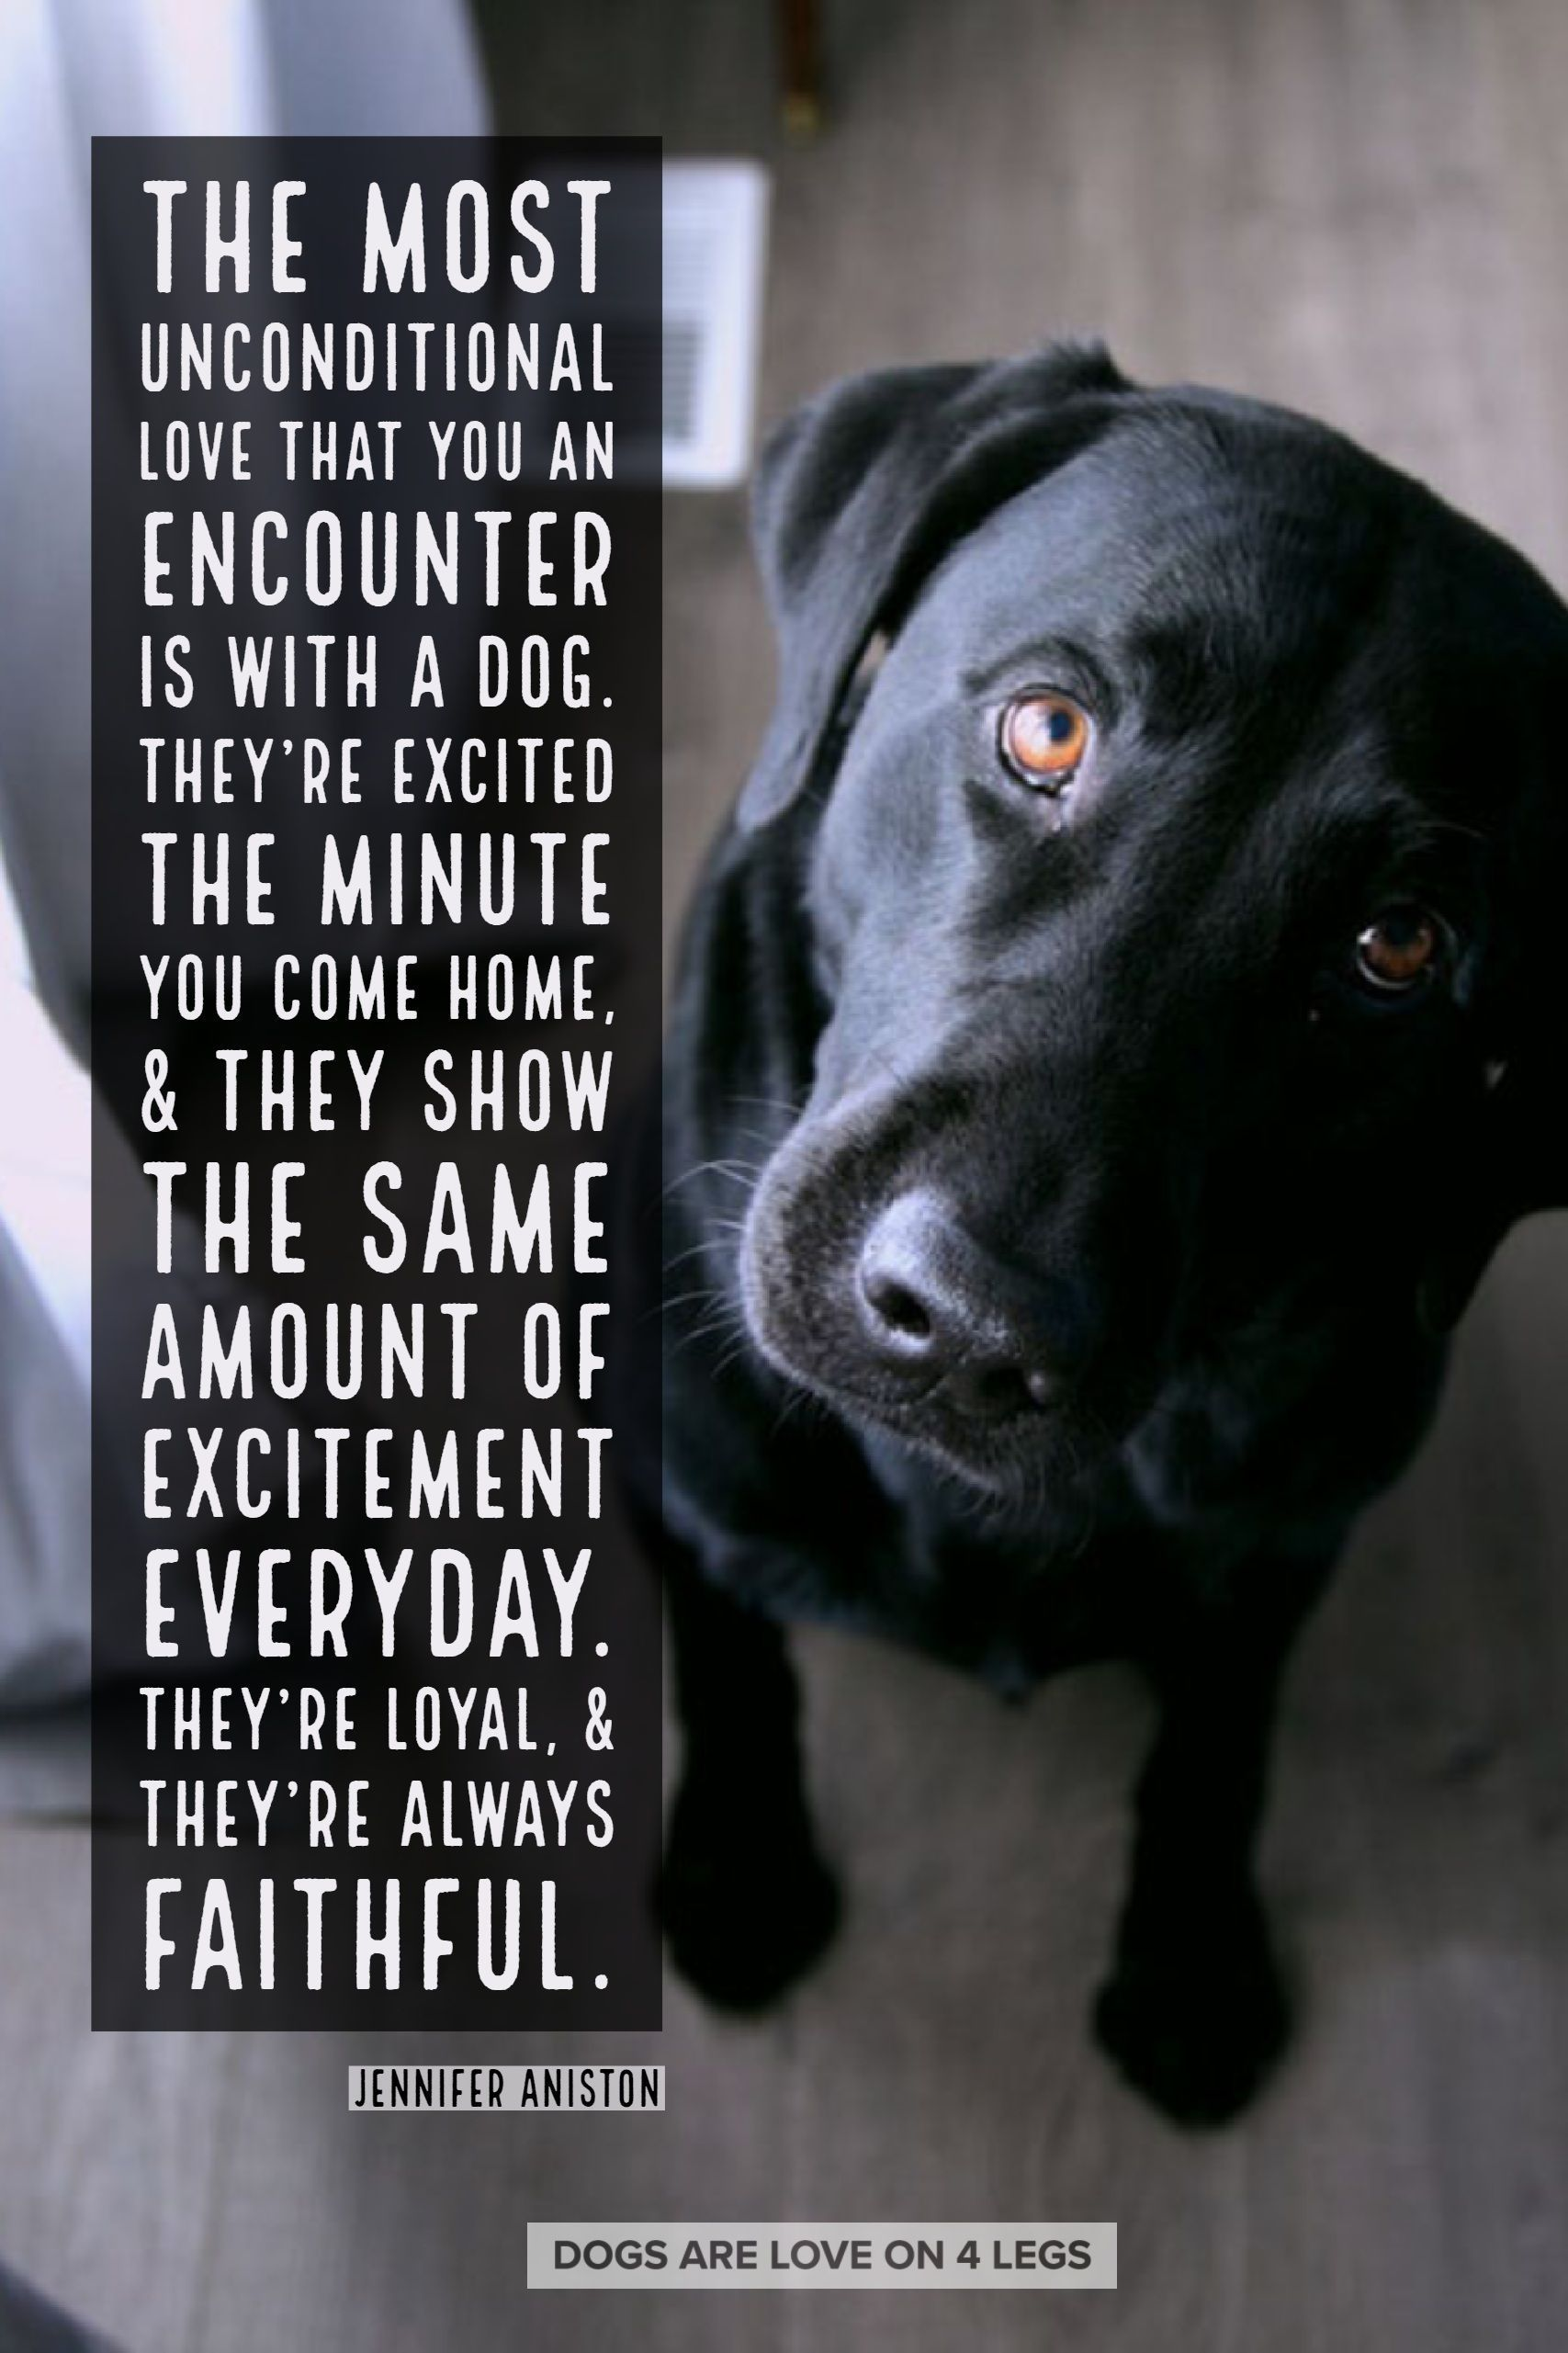 Dog Quote The Most Unconditional Love That You Can Encounter Is With A Dog Dog Dog Quotes Inspiration Dog Quotes Inspirational Dog Quotes Funny Dog Quotes